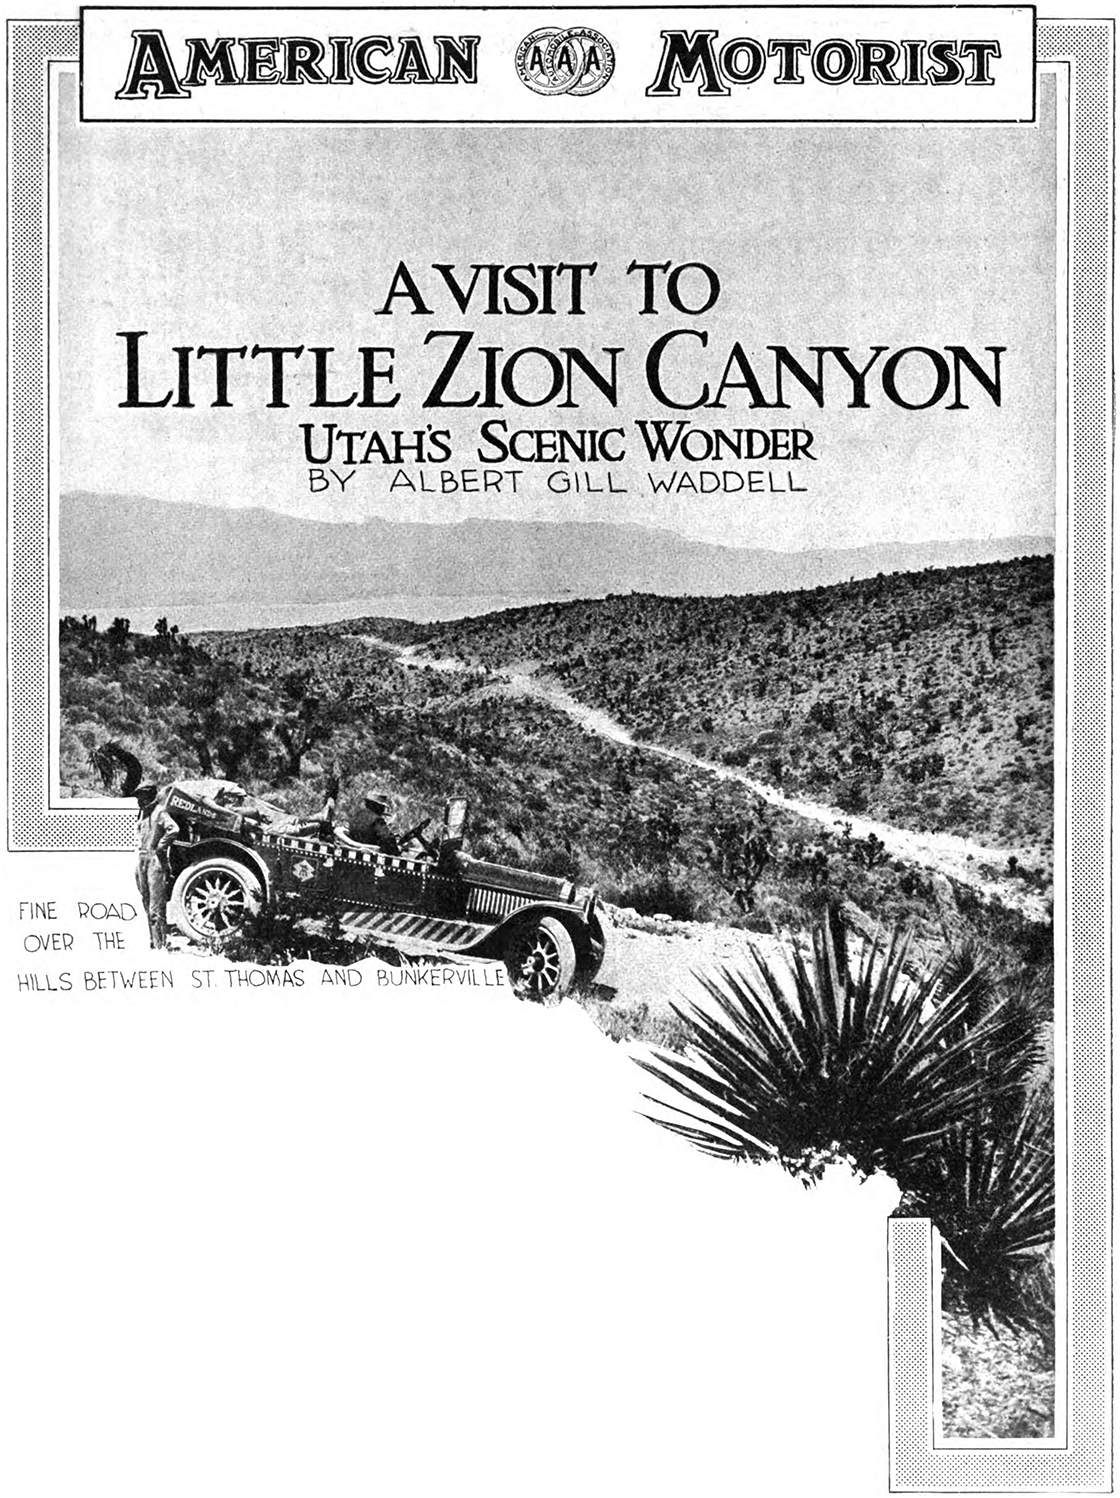 A visit to little zion canyon american motorist august 1 for Zion motors st george